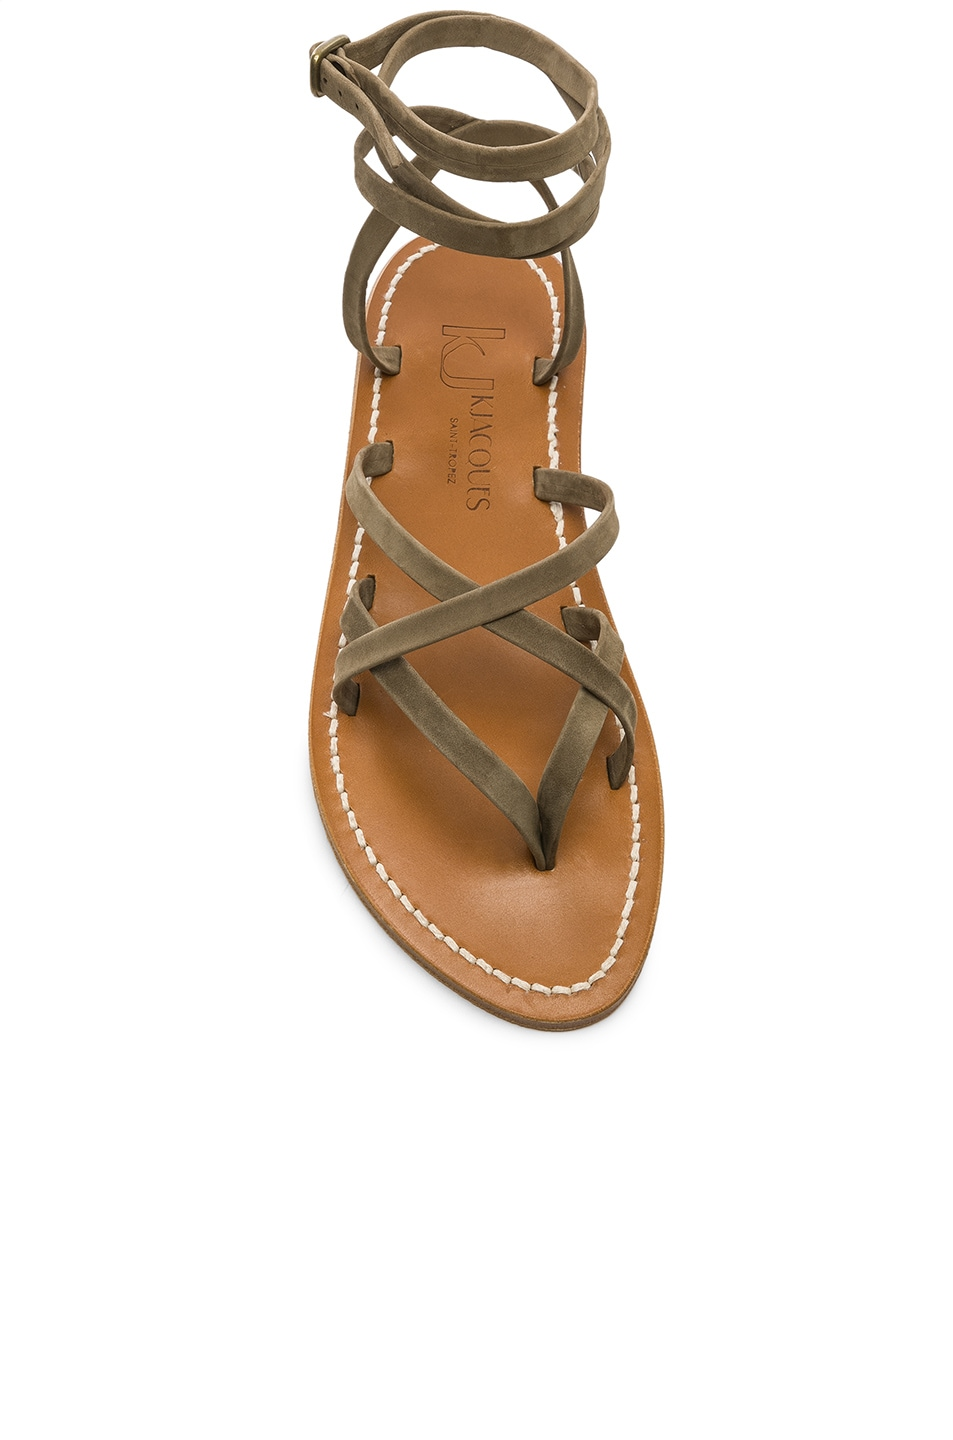 Image 4 of K Jacques Zenobie Sandal in Nubuck Kaki